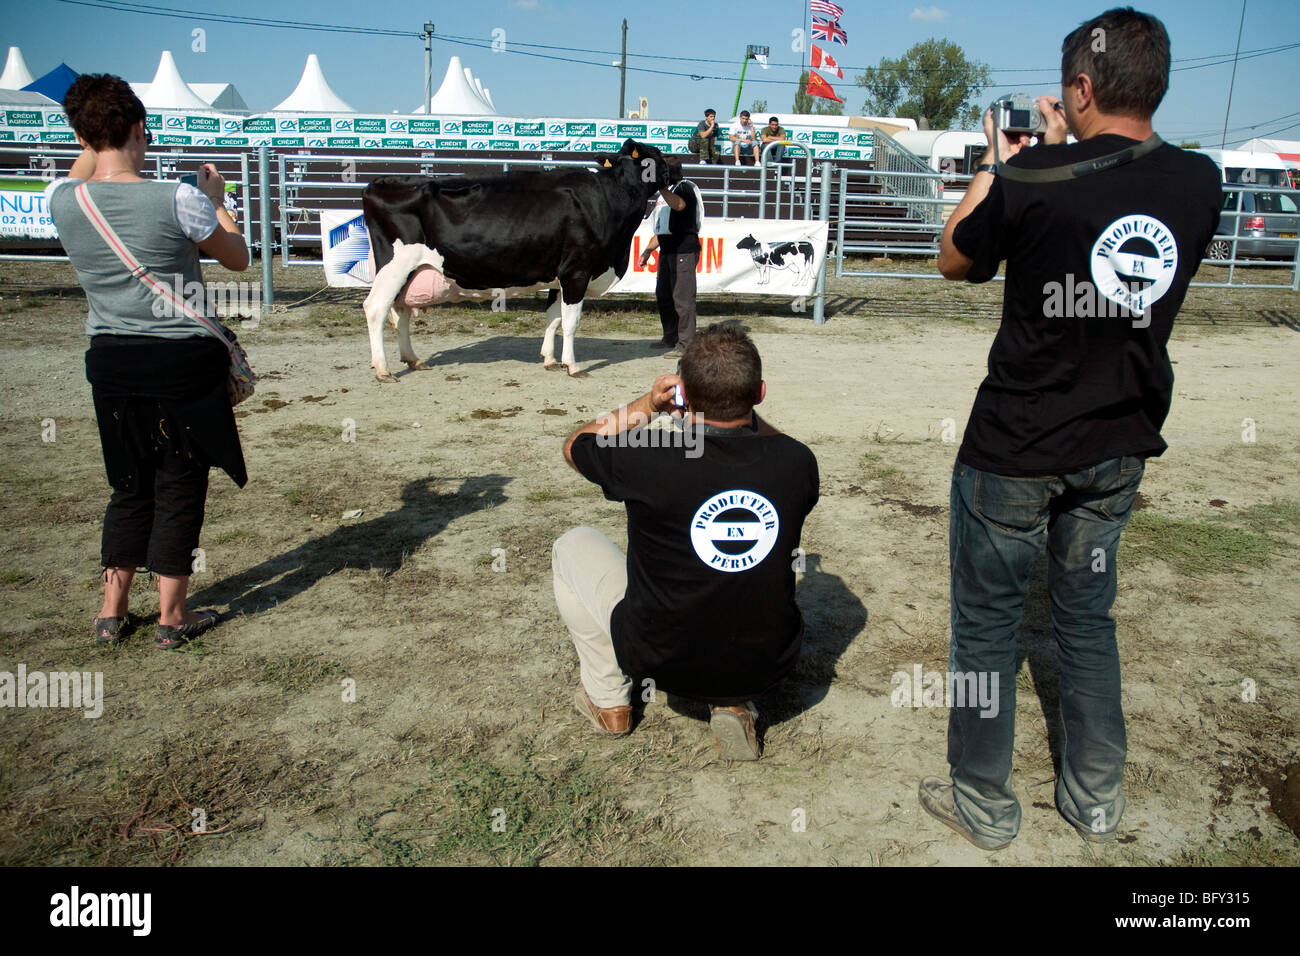 French dairy workers in tee-shirts with a milk trade alarm slogan photograph a prizewinning Holstein cow at a Gascon - Stock Image